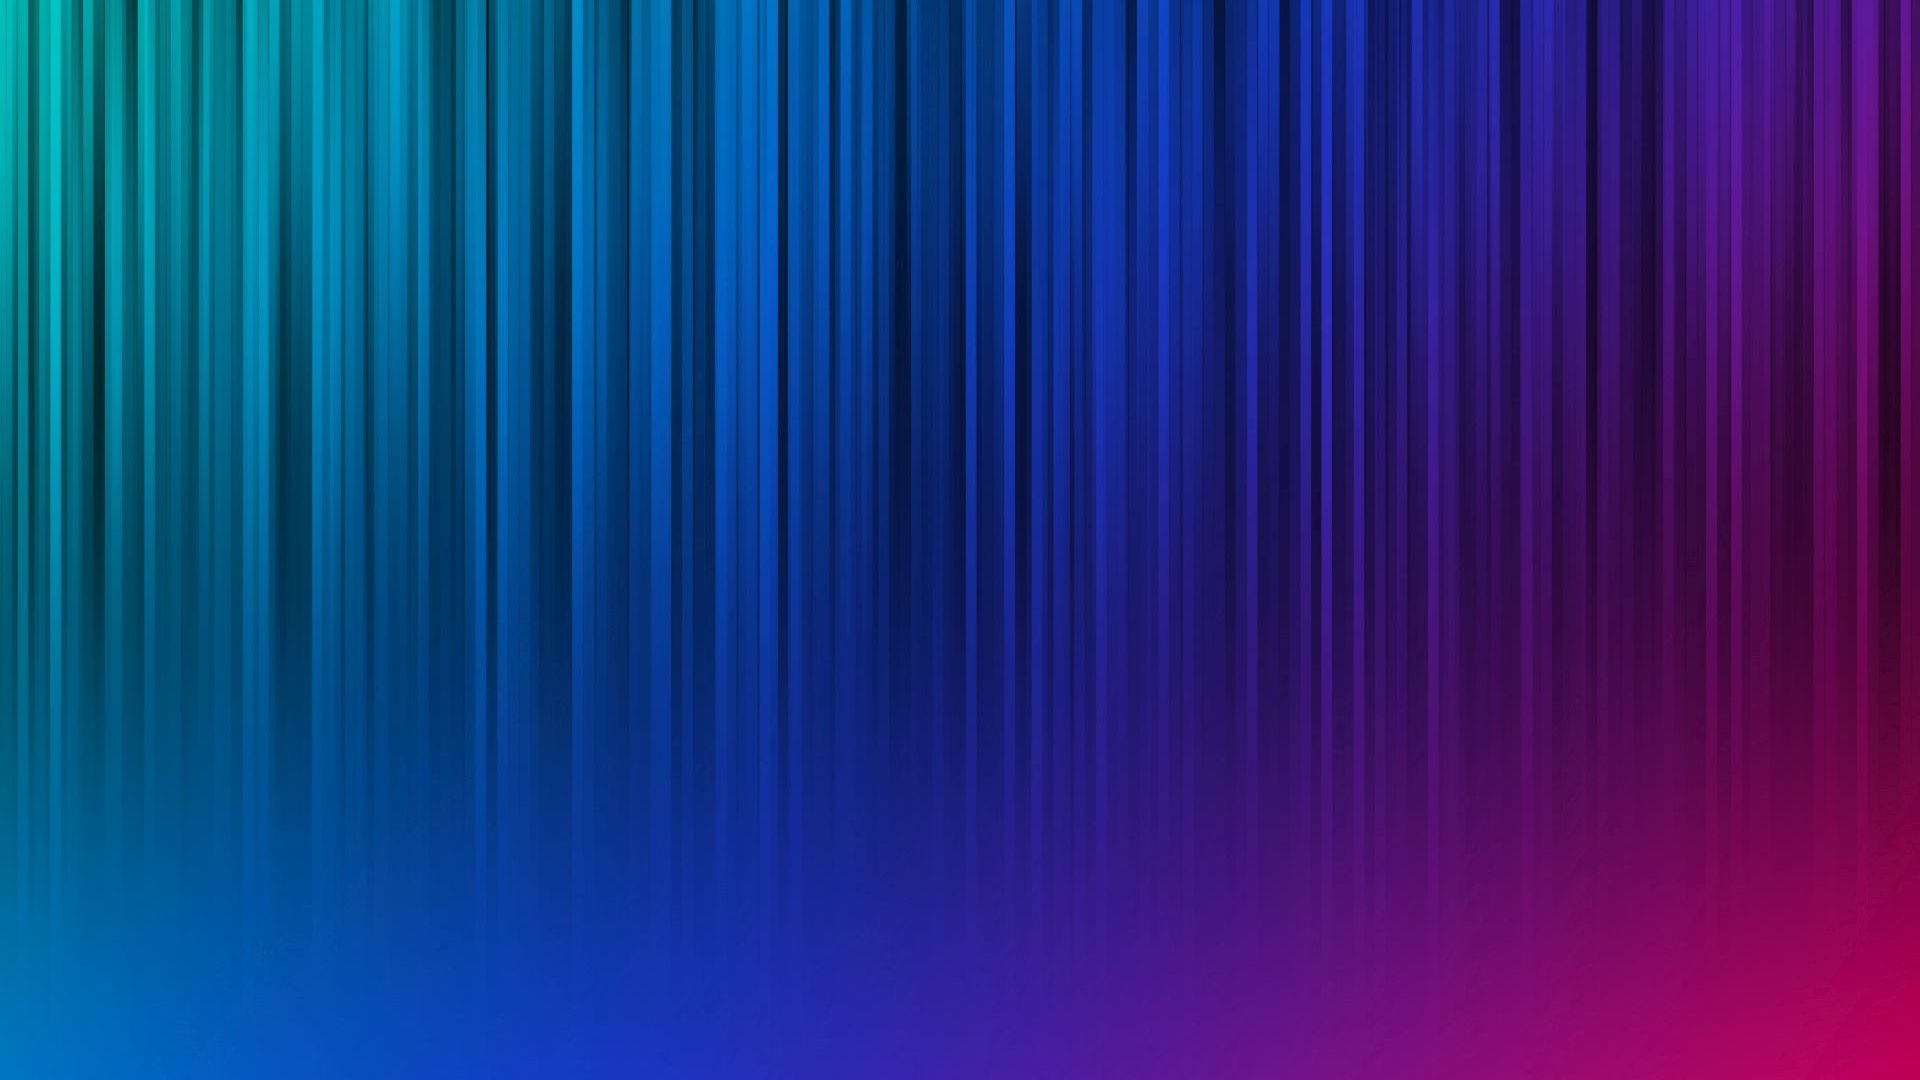 Pink And Blue Striped Wallpaper 2989 Wallpaper: Blue And Pink Wallpapers